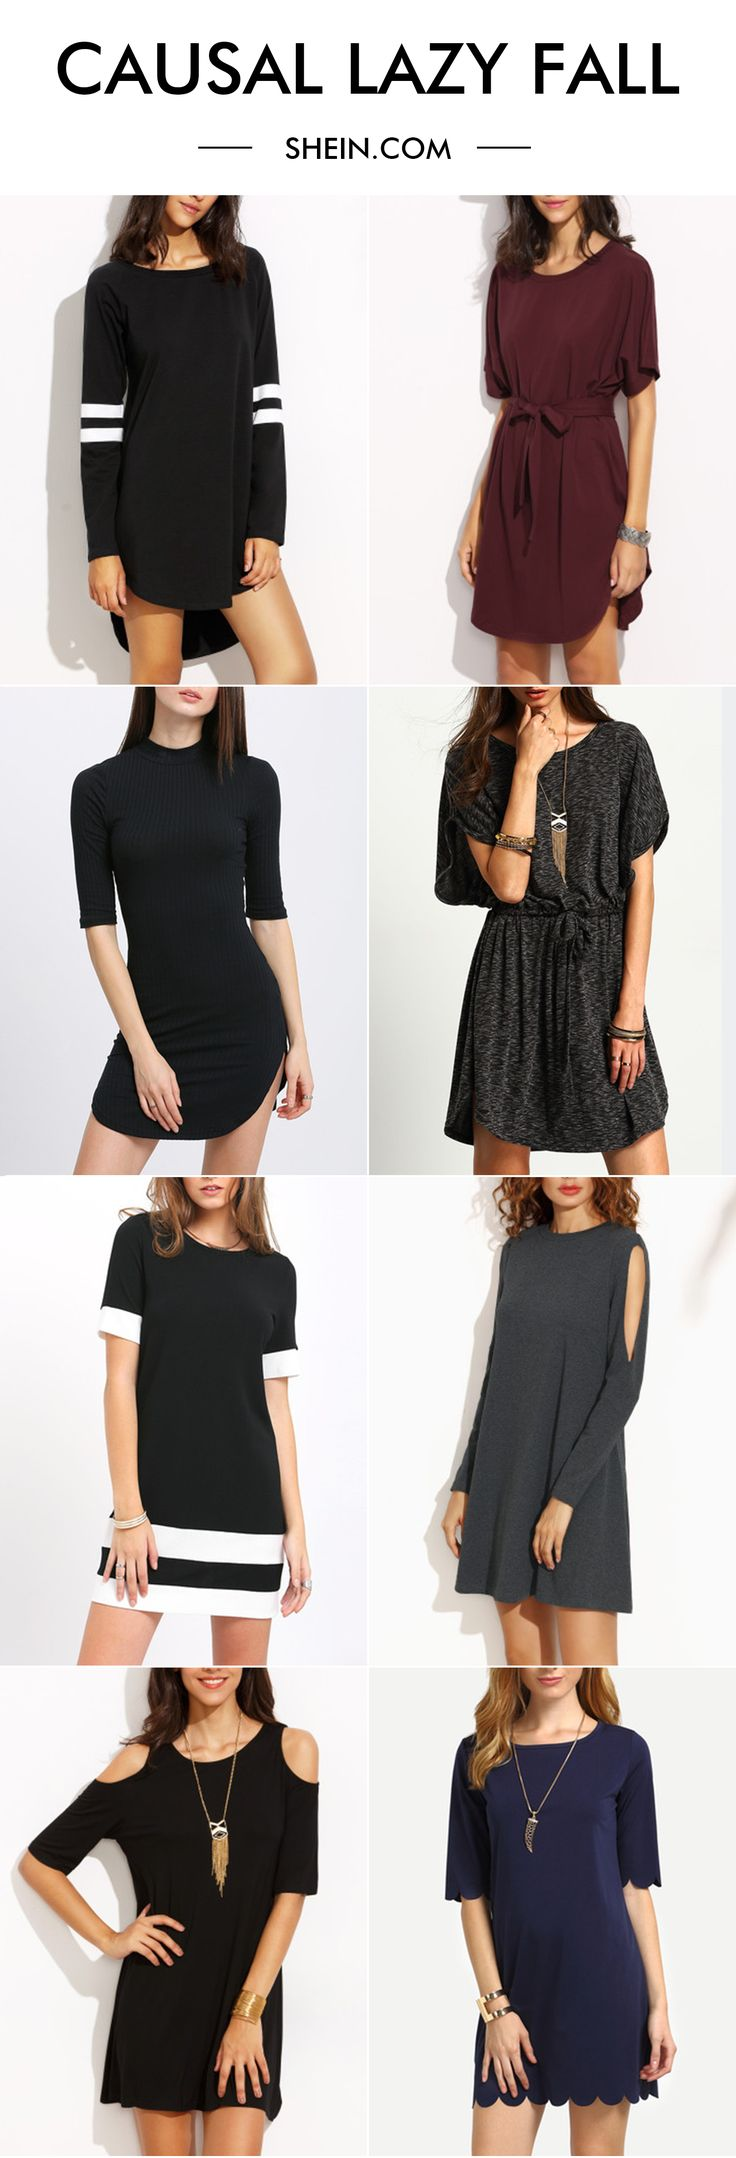 Global casual dress for fall & winter. Basic dress for women's closet!